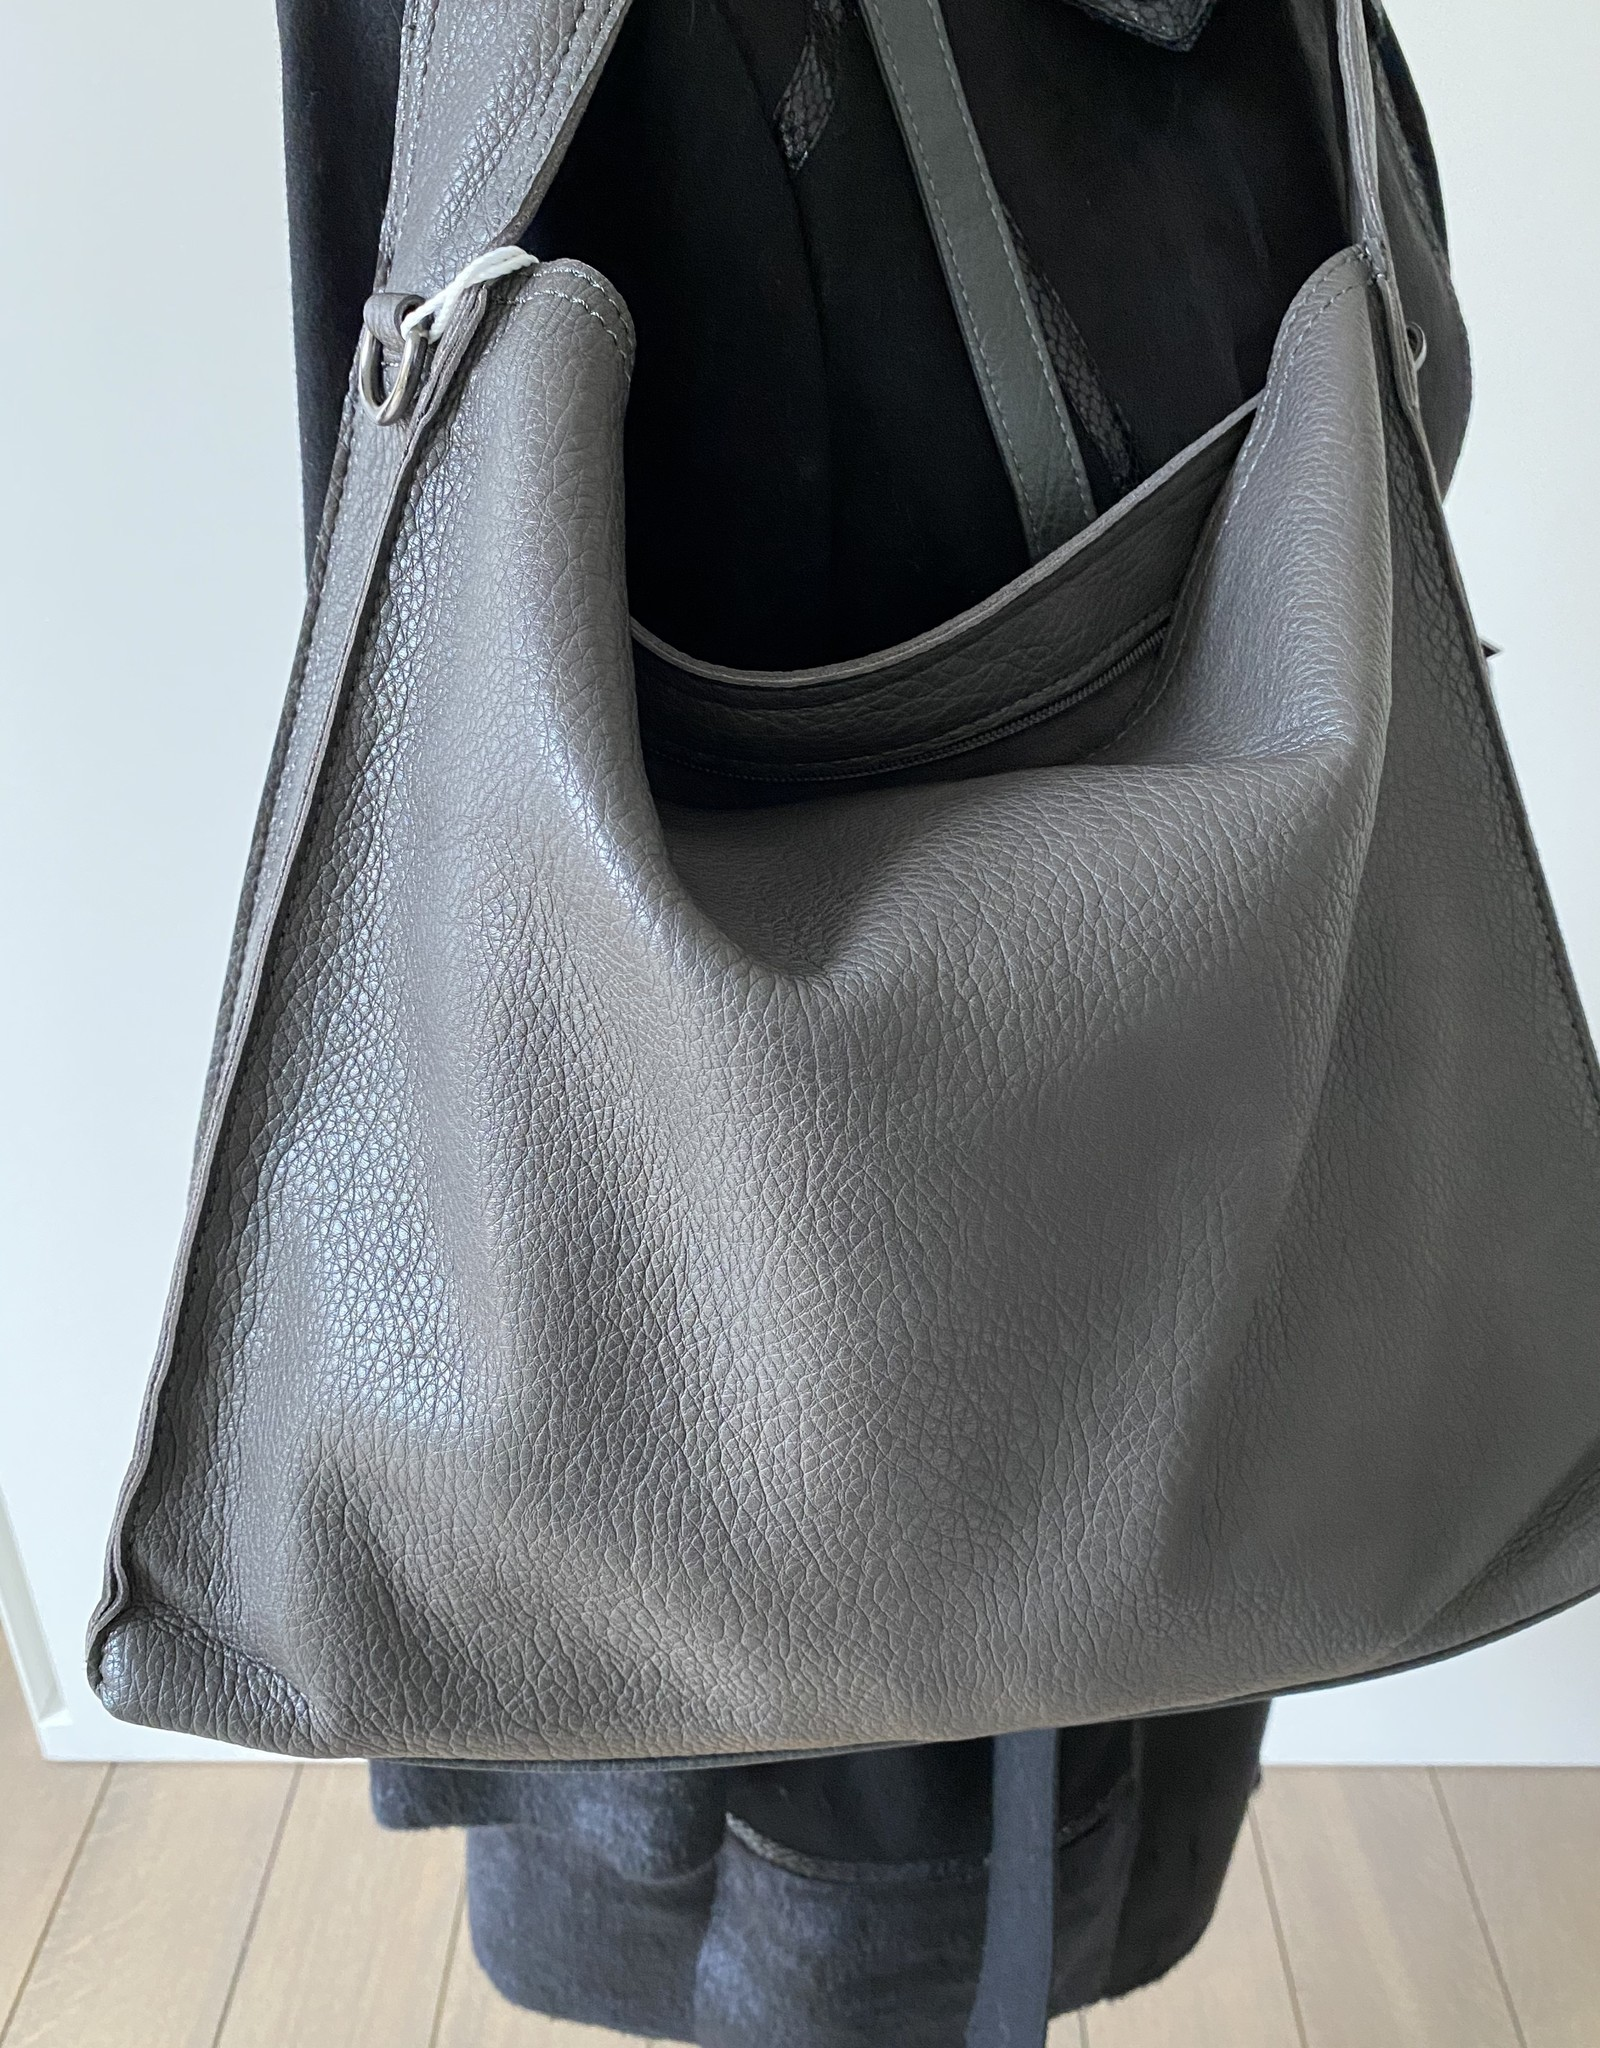 Big bag, artificial leather with little bag inside